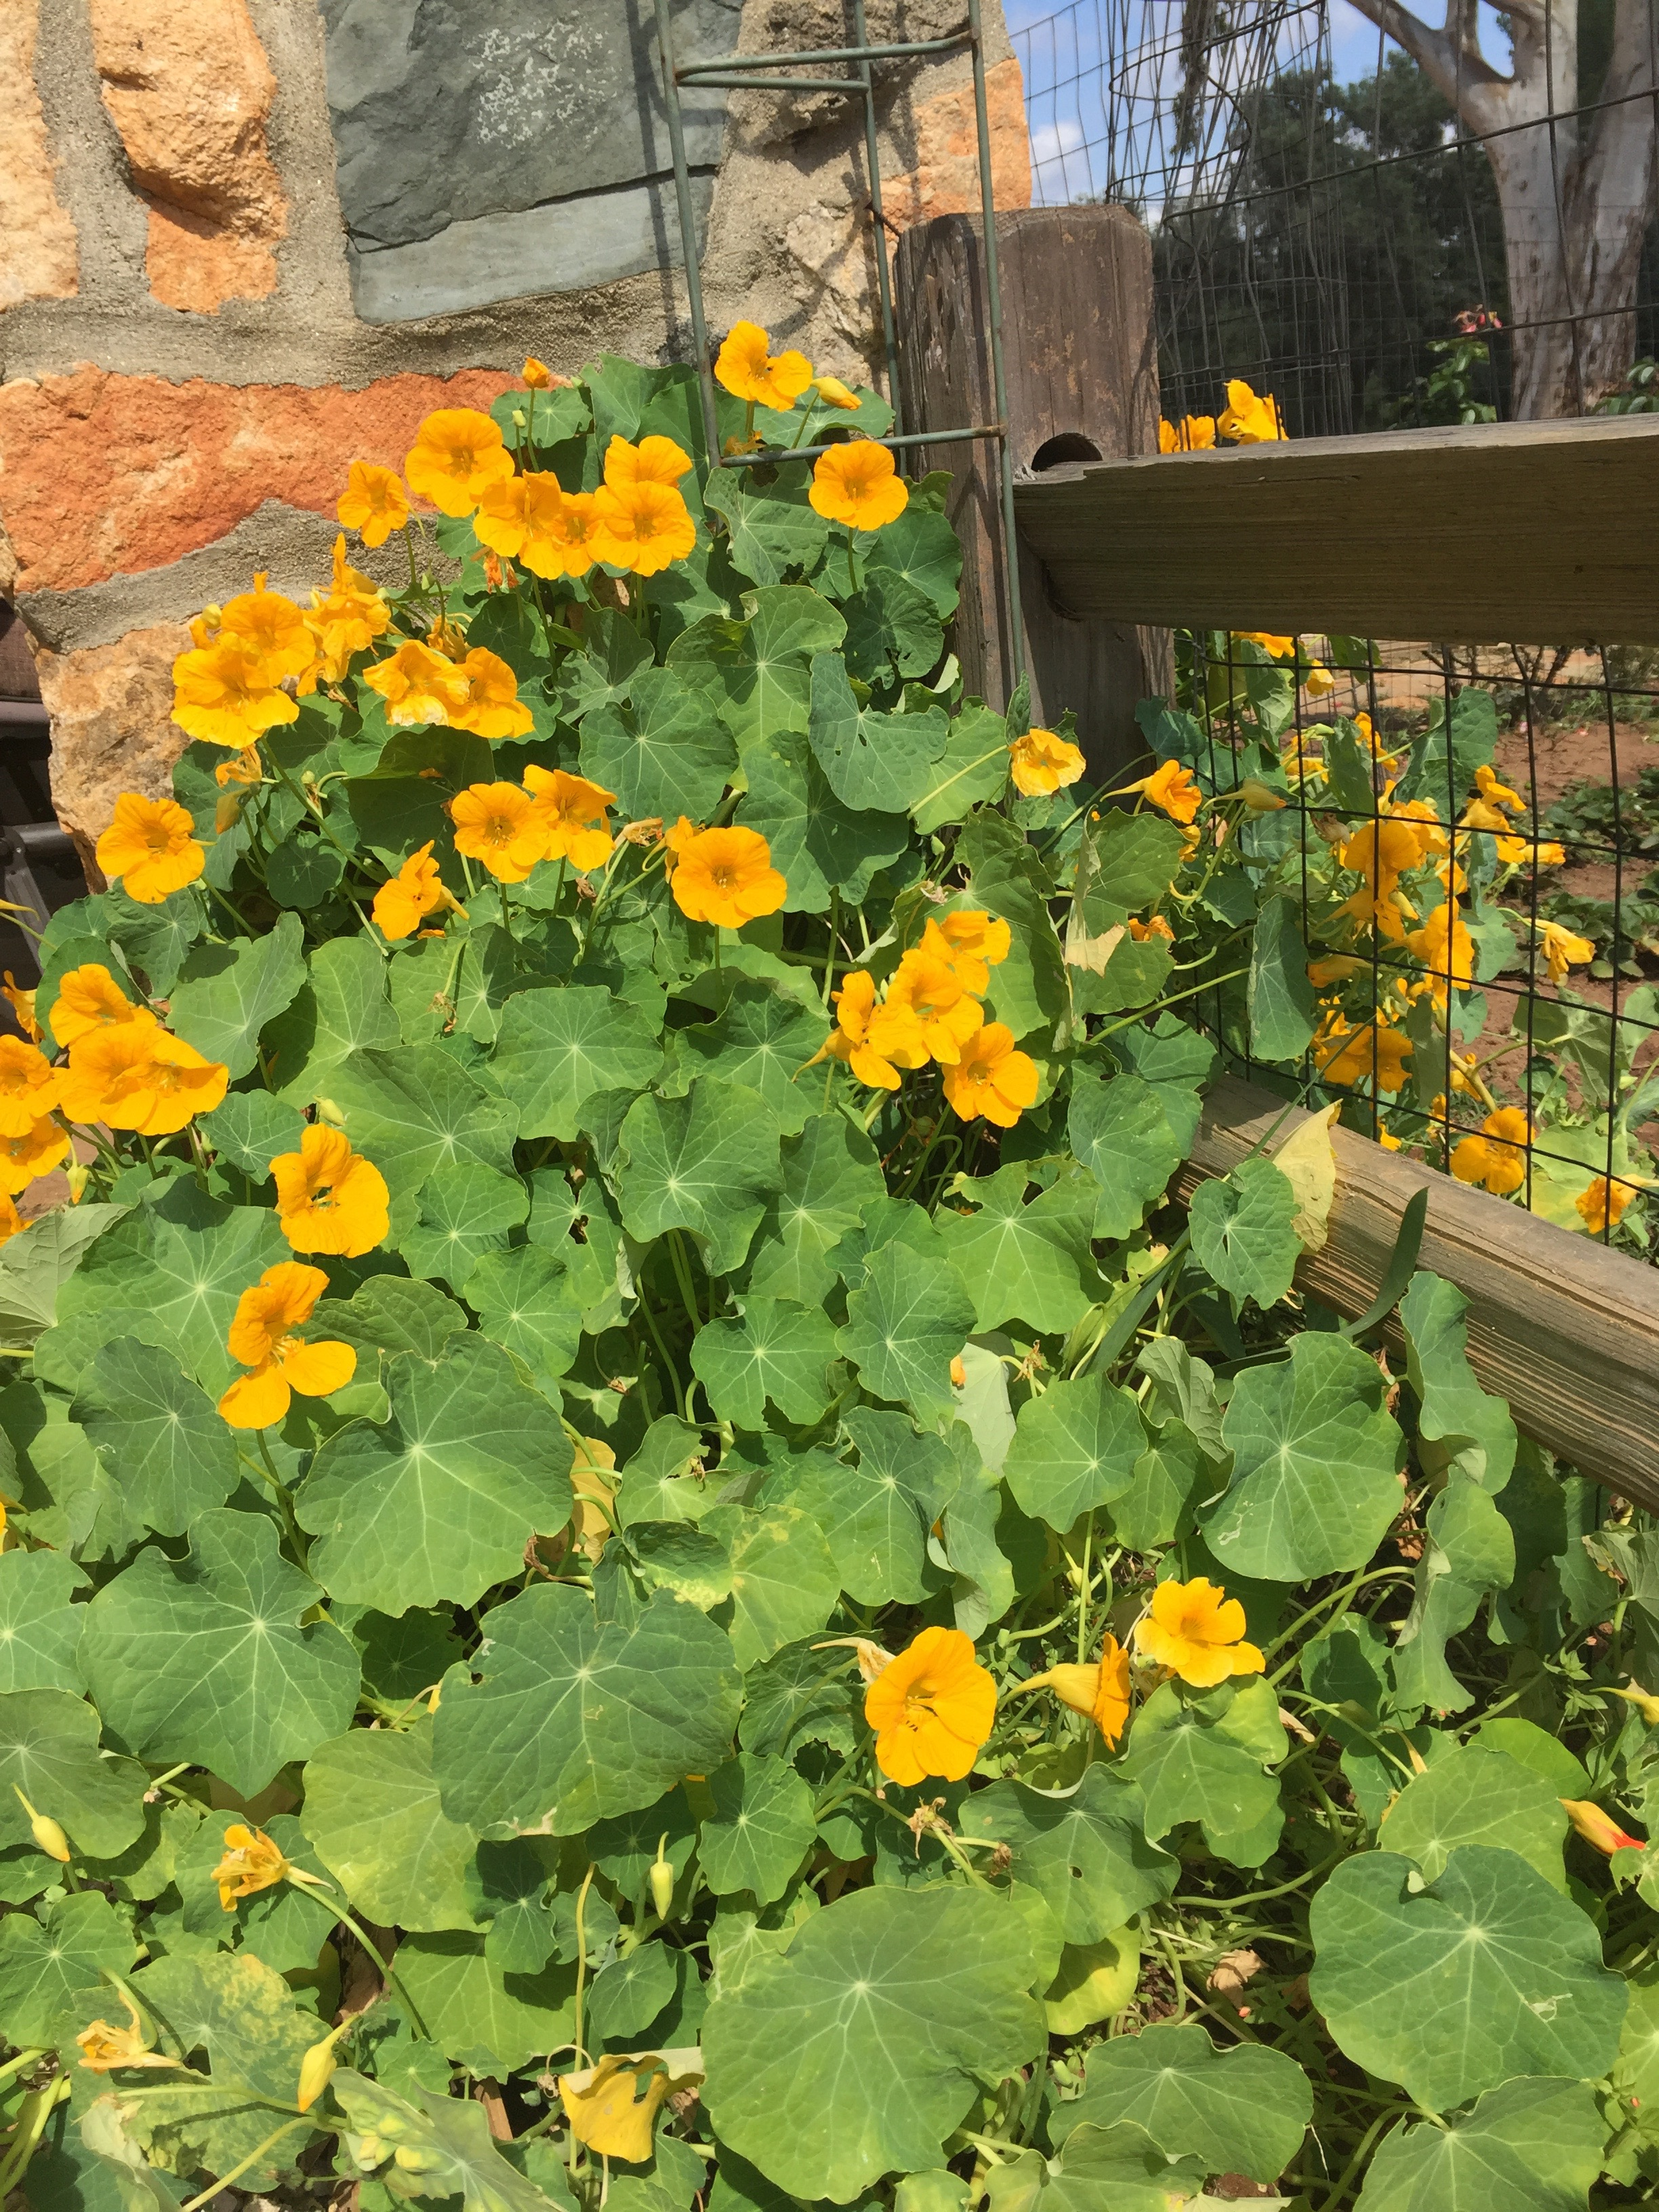 Best plants for San Diego: How does your vegetable garden grow?